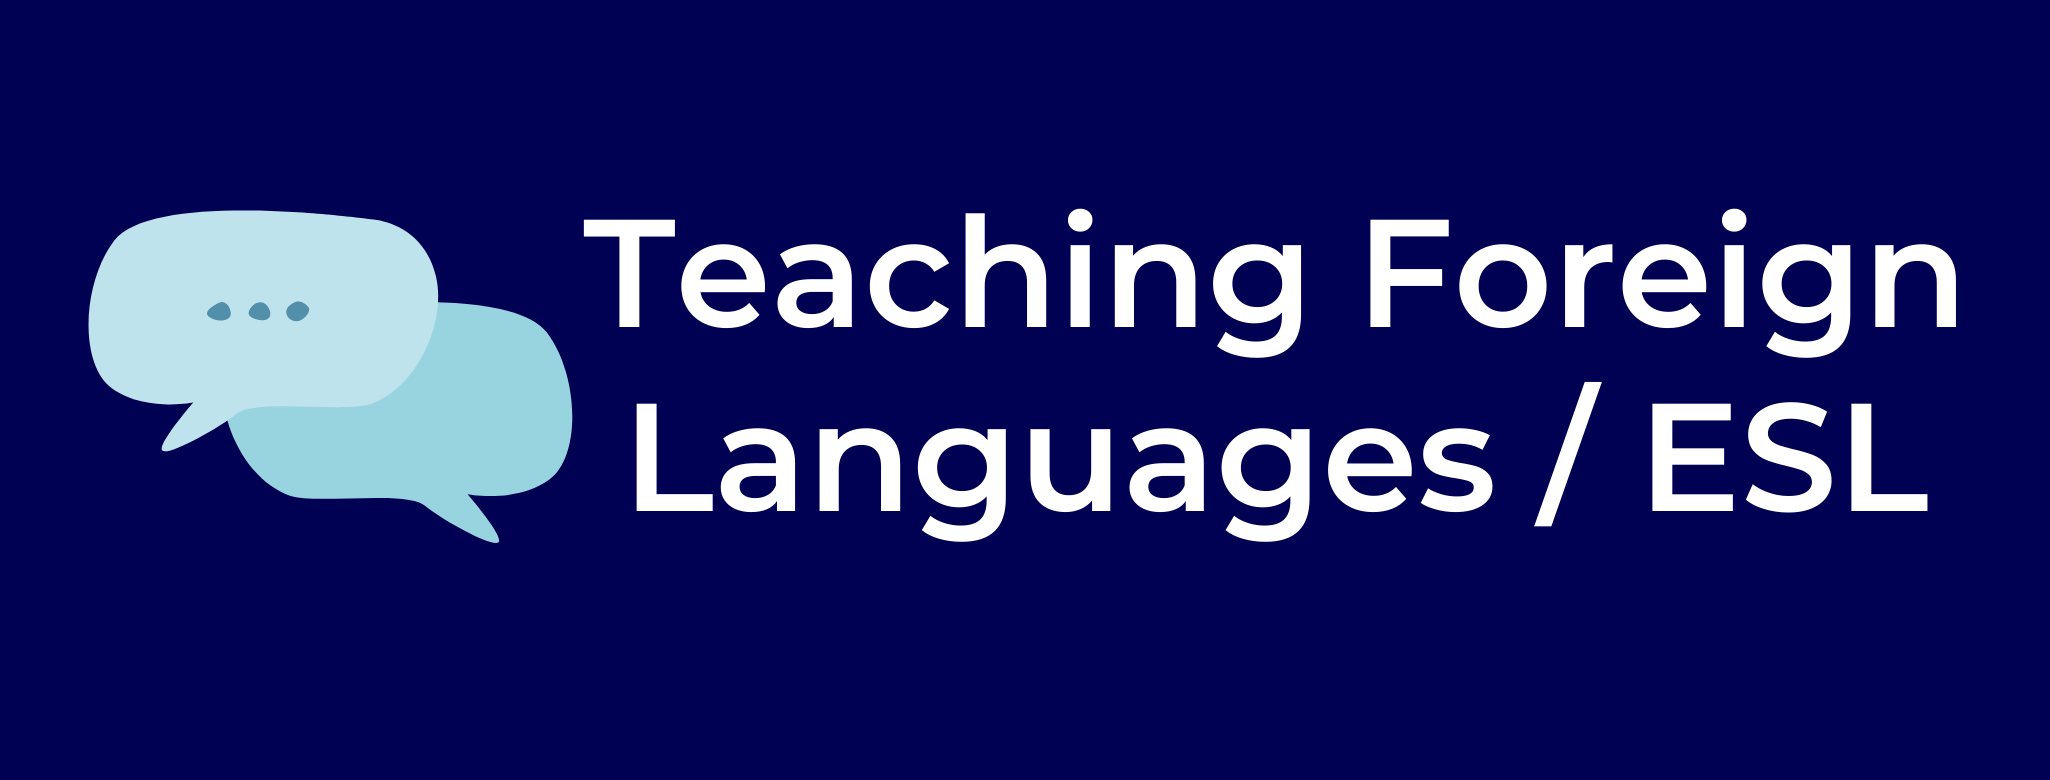 teaching foreign languages button